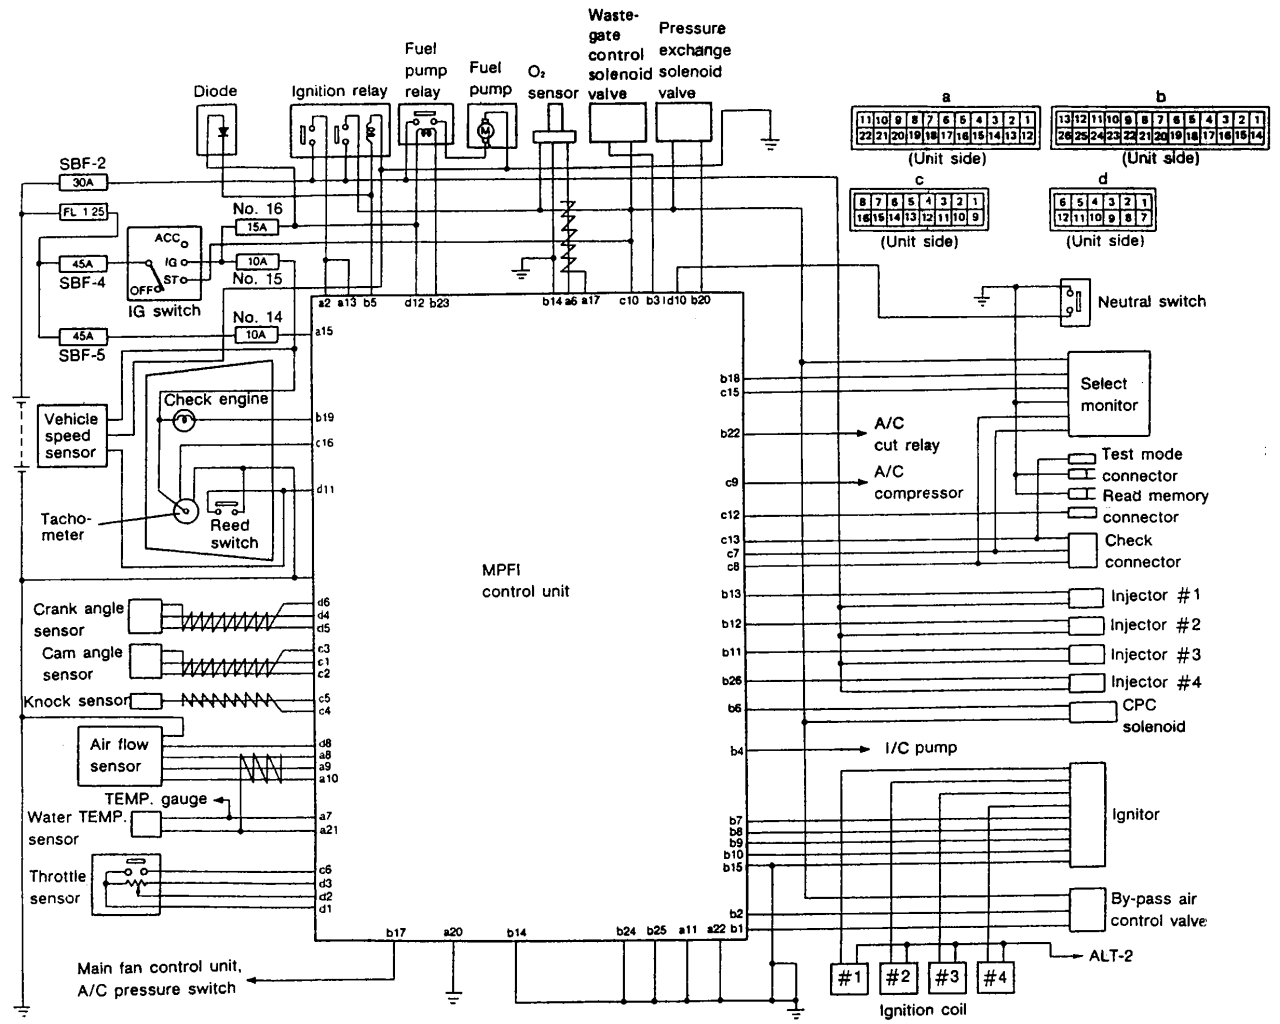 Jeep Liberty Wiring Diagram Collection